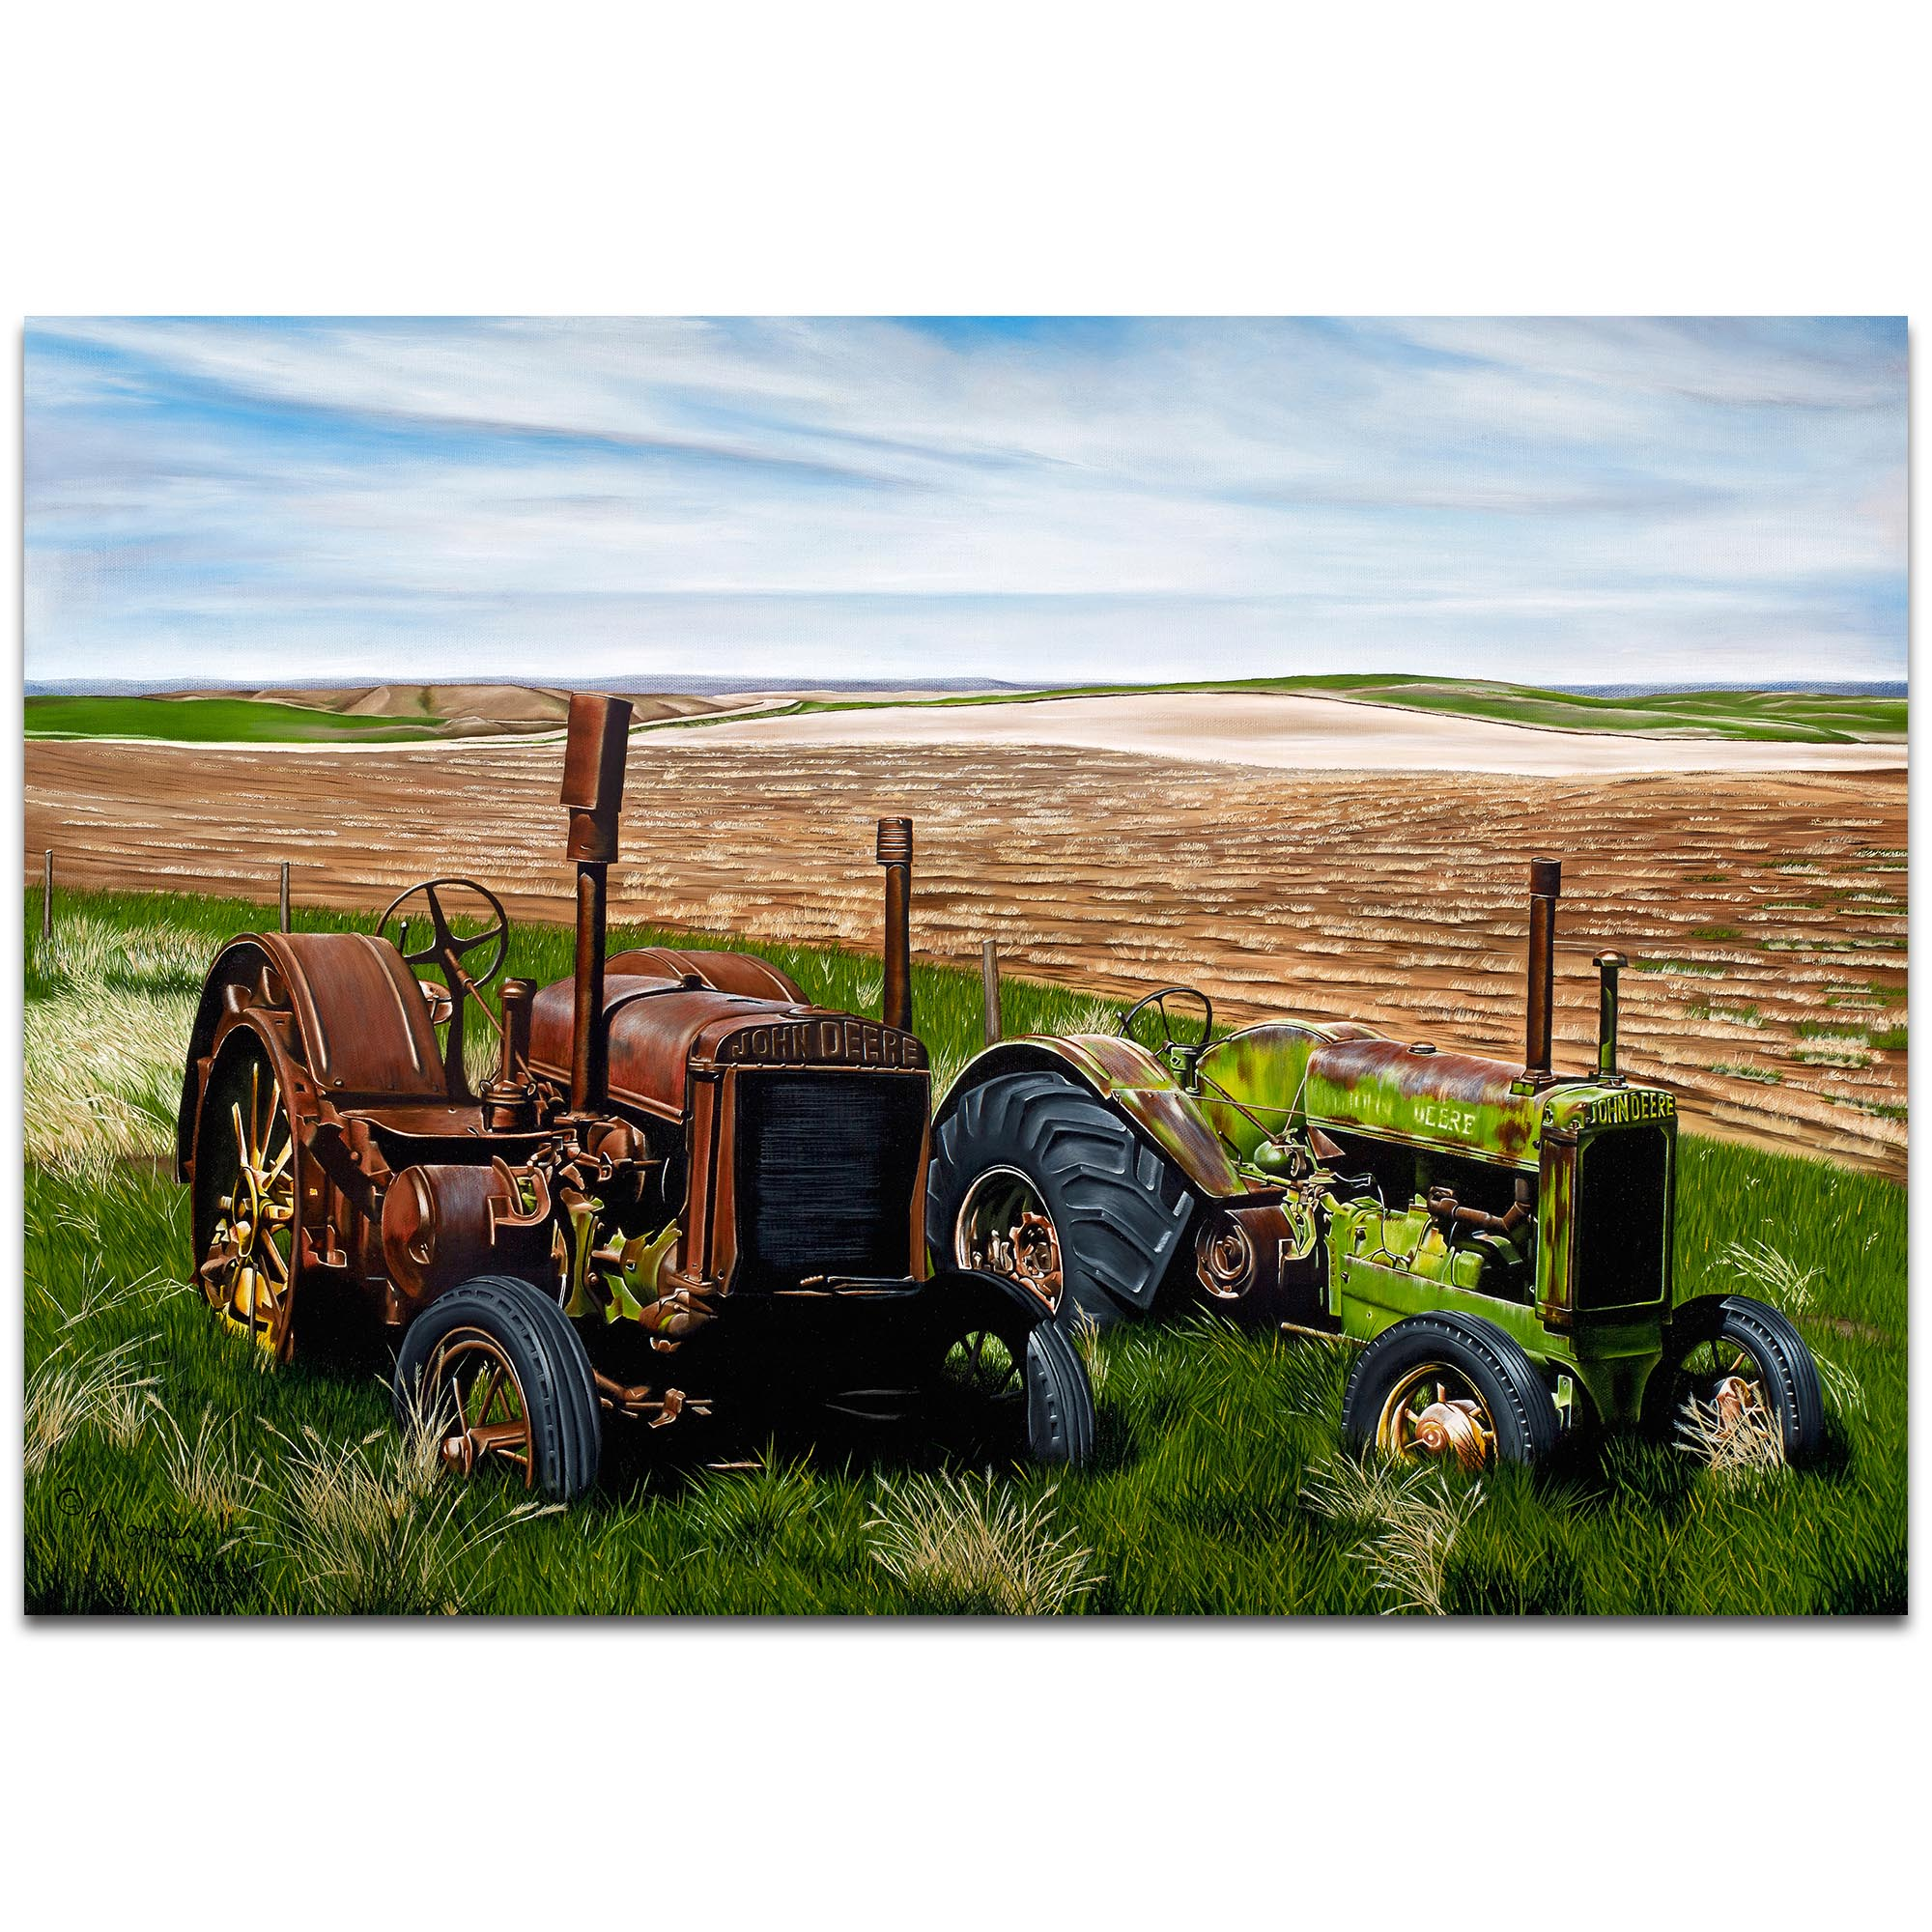 Americana Wall Art 'Two John Boys' - Classic Tractor Decor on Metal or Plexiglass